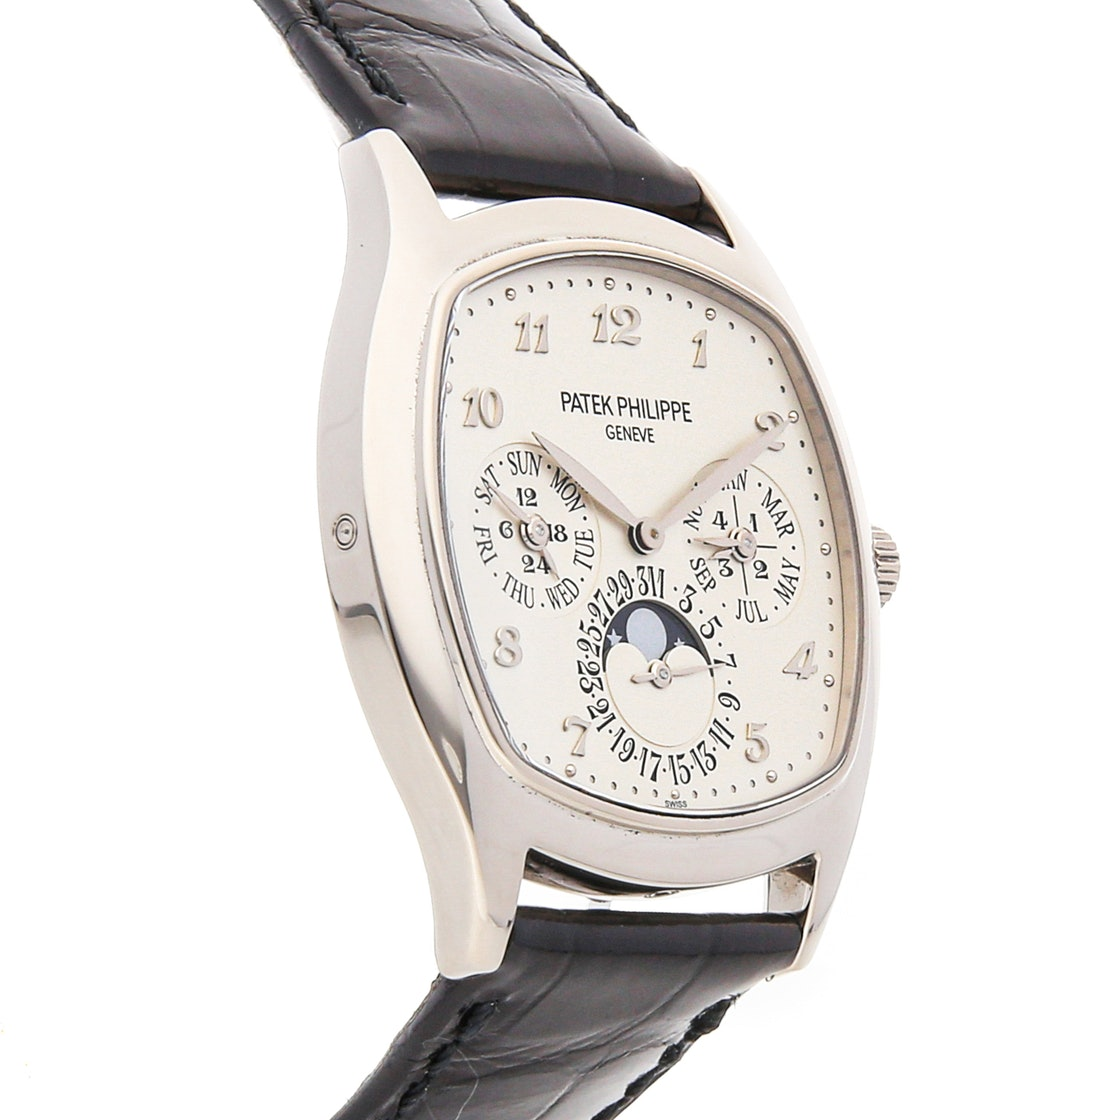 Patek Philippe Grand Complications Perpetual Calendar 5940G-001